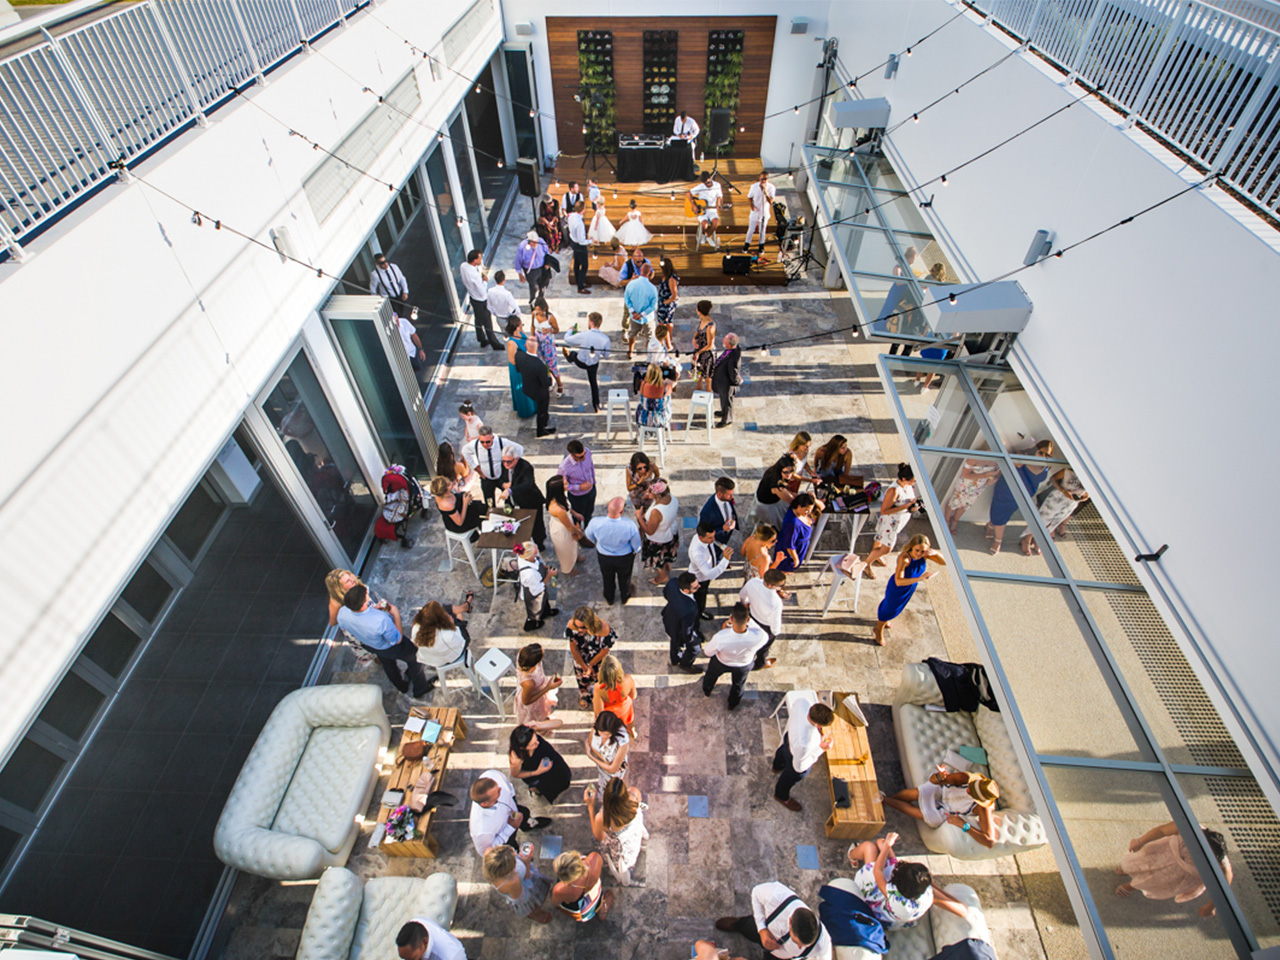 Top View Of The Function Room Extension With String Lights, Couch, Tables, Wooden Plant Wall In Front And People Gathering